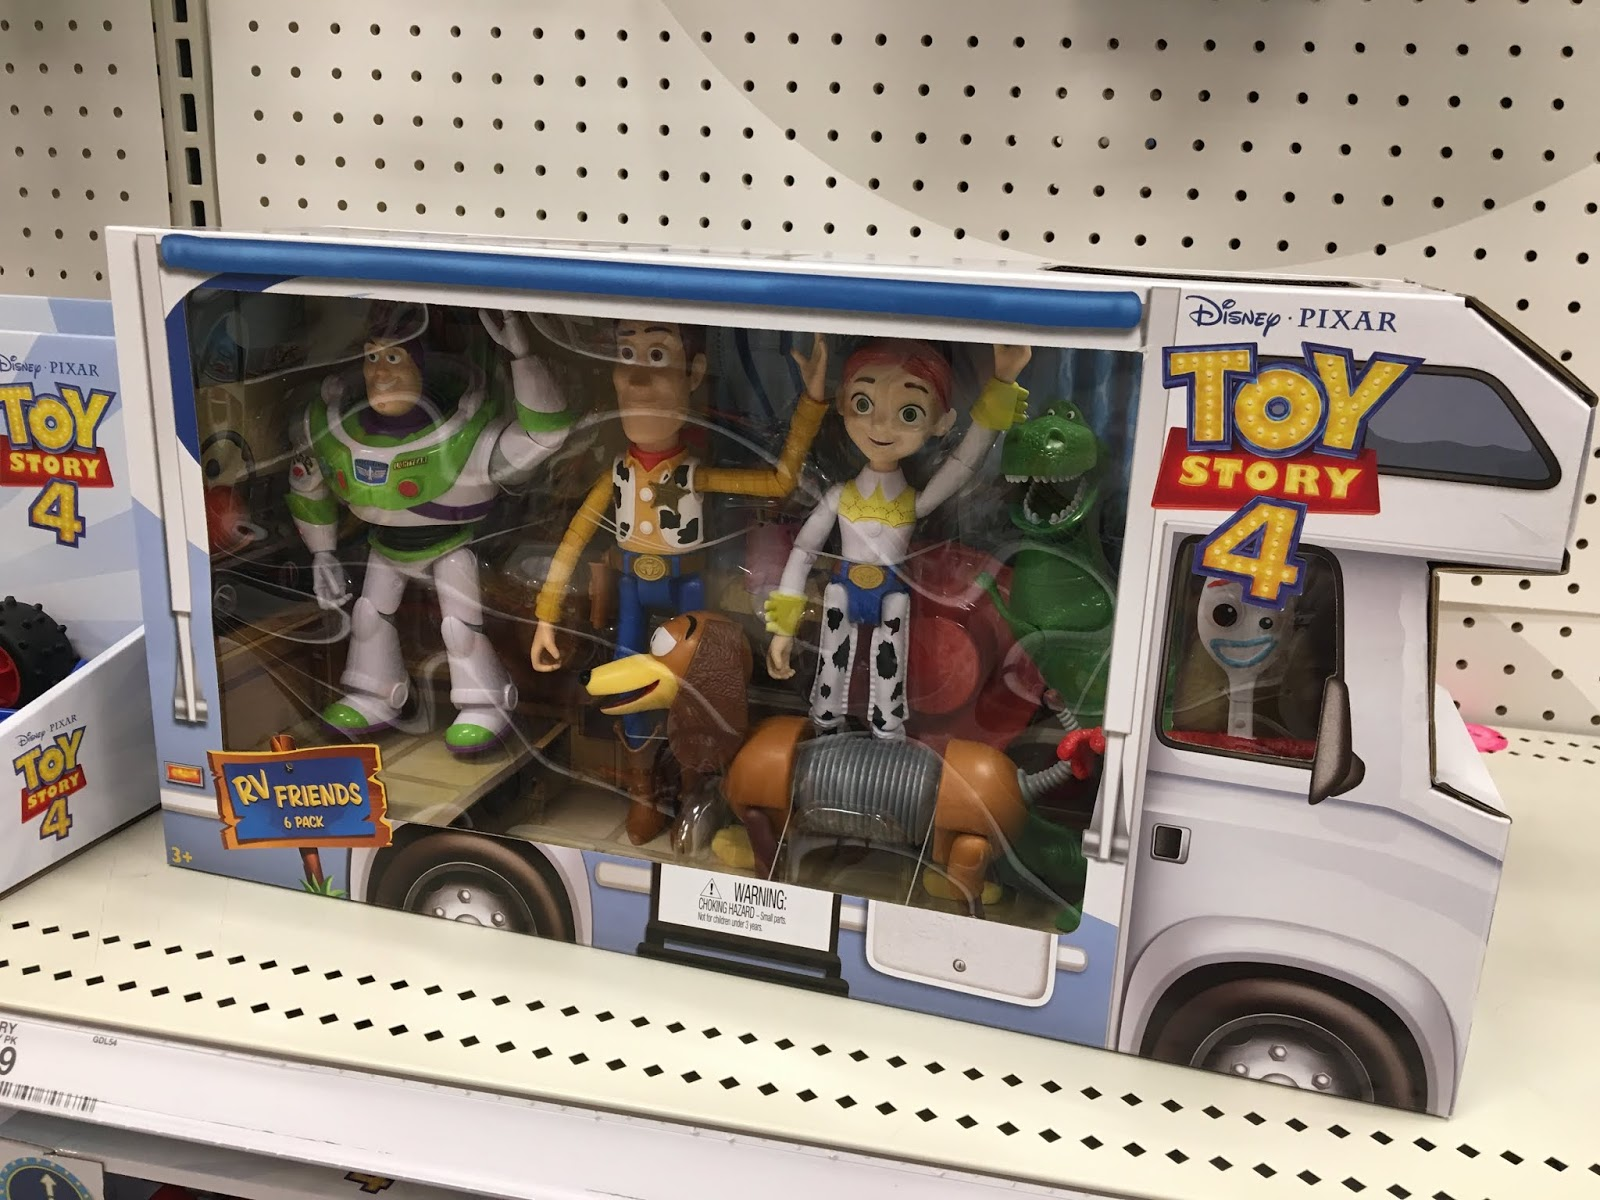 toy story 4 RV figure set